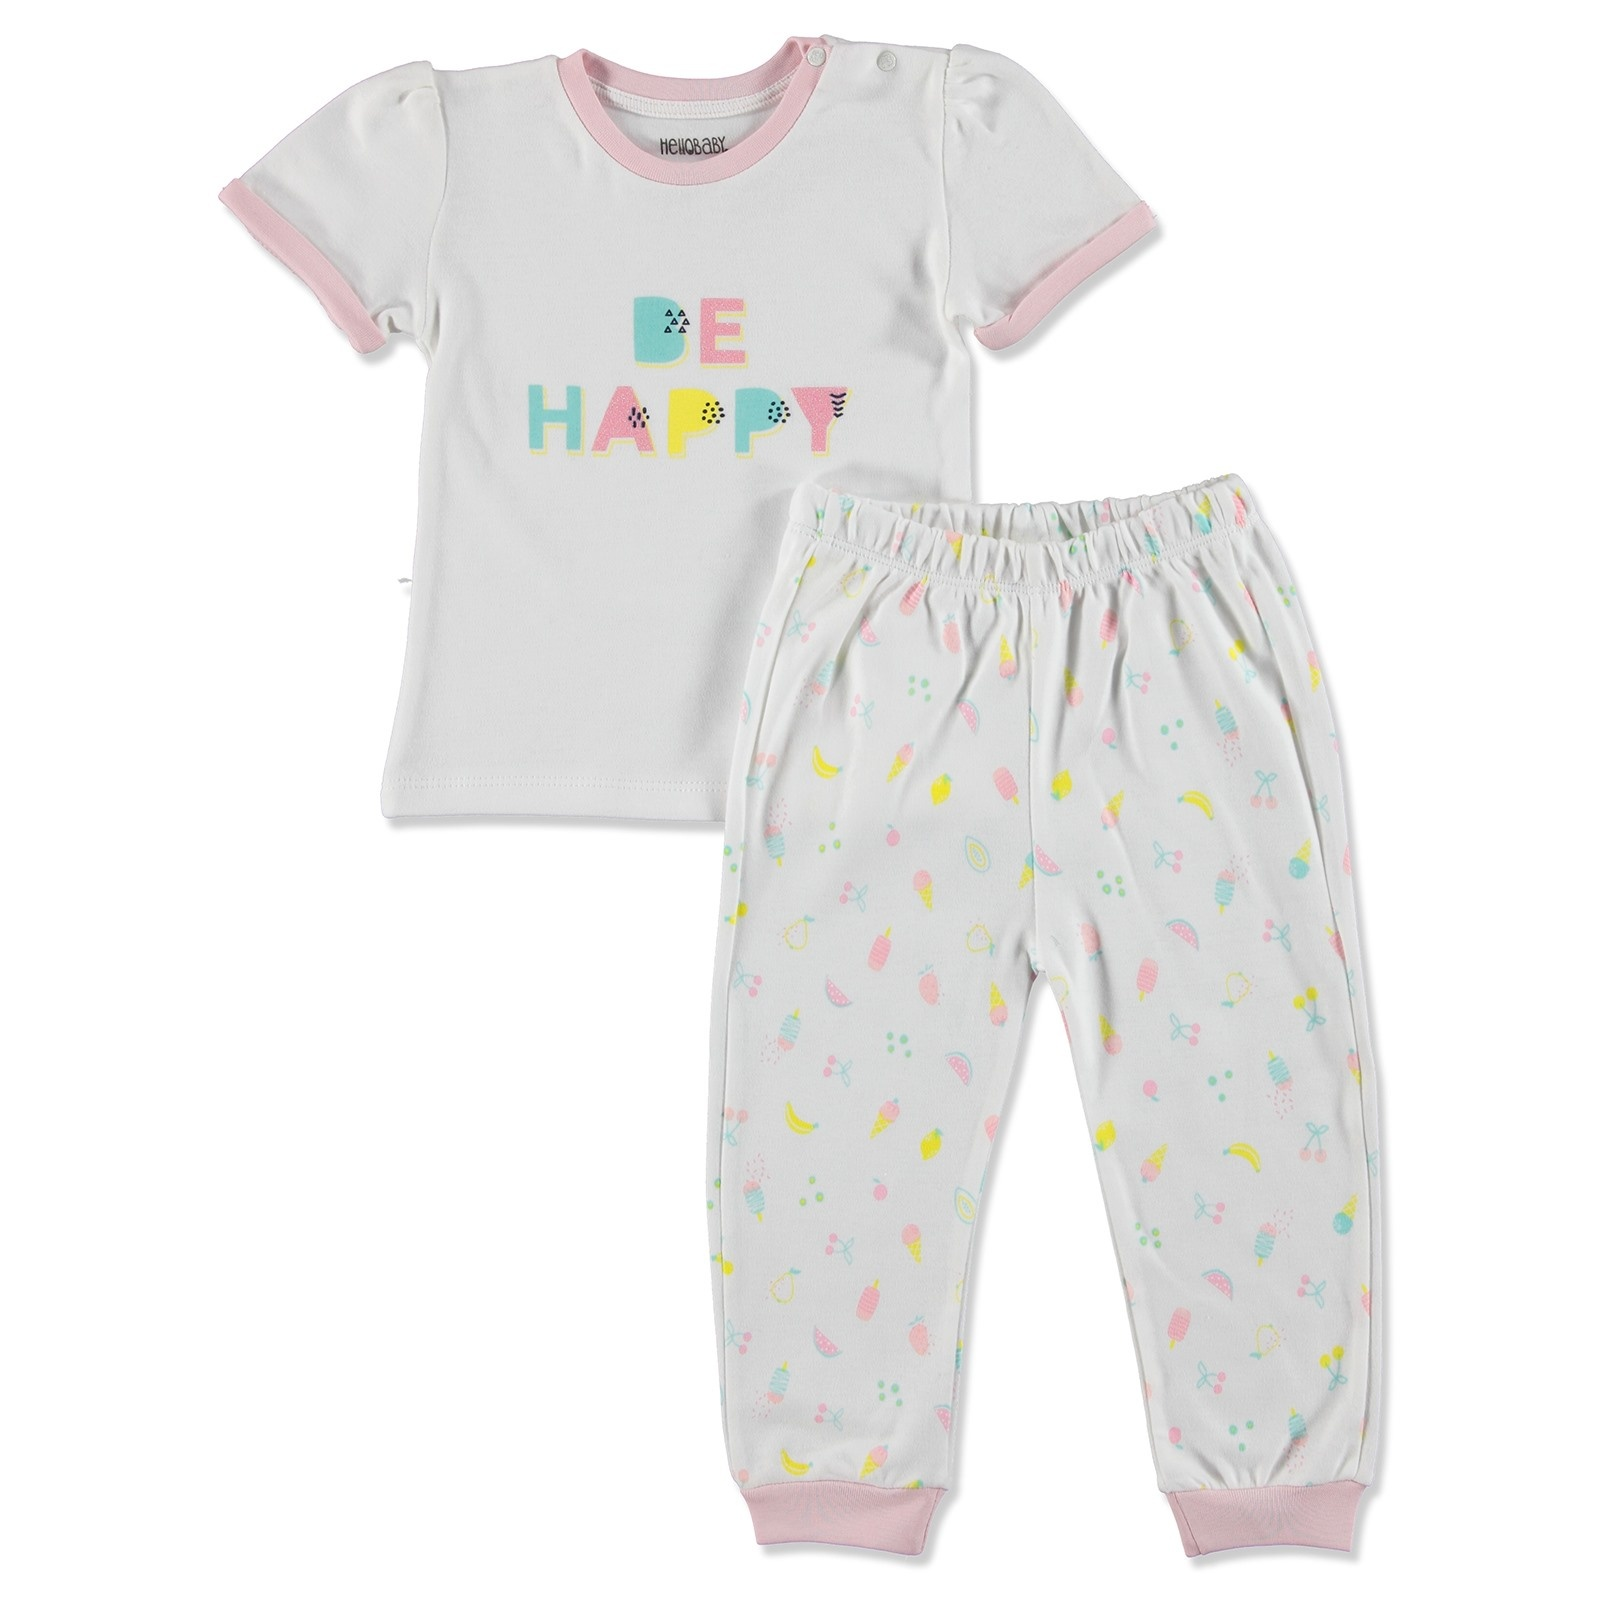 Ebebek HelloBaby Summer Baby Sweet Fruits Pyjamas Set